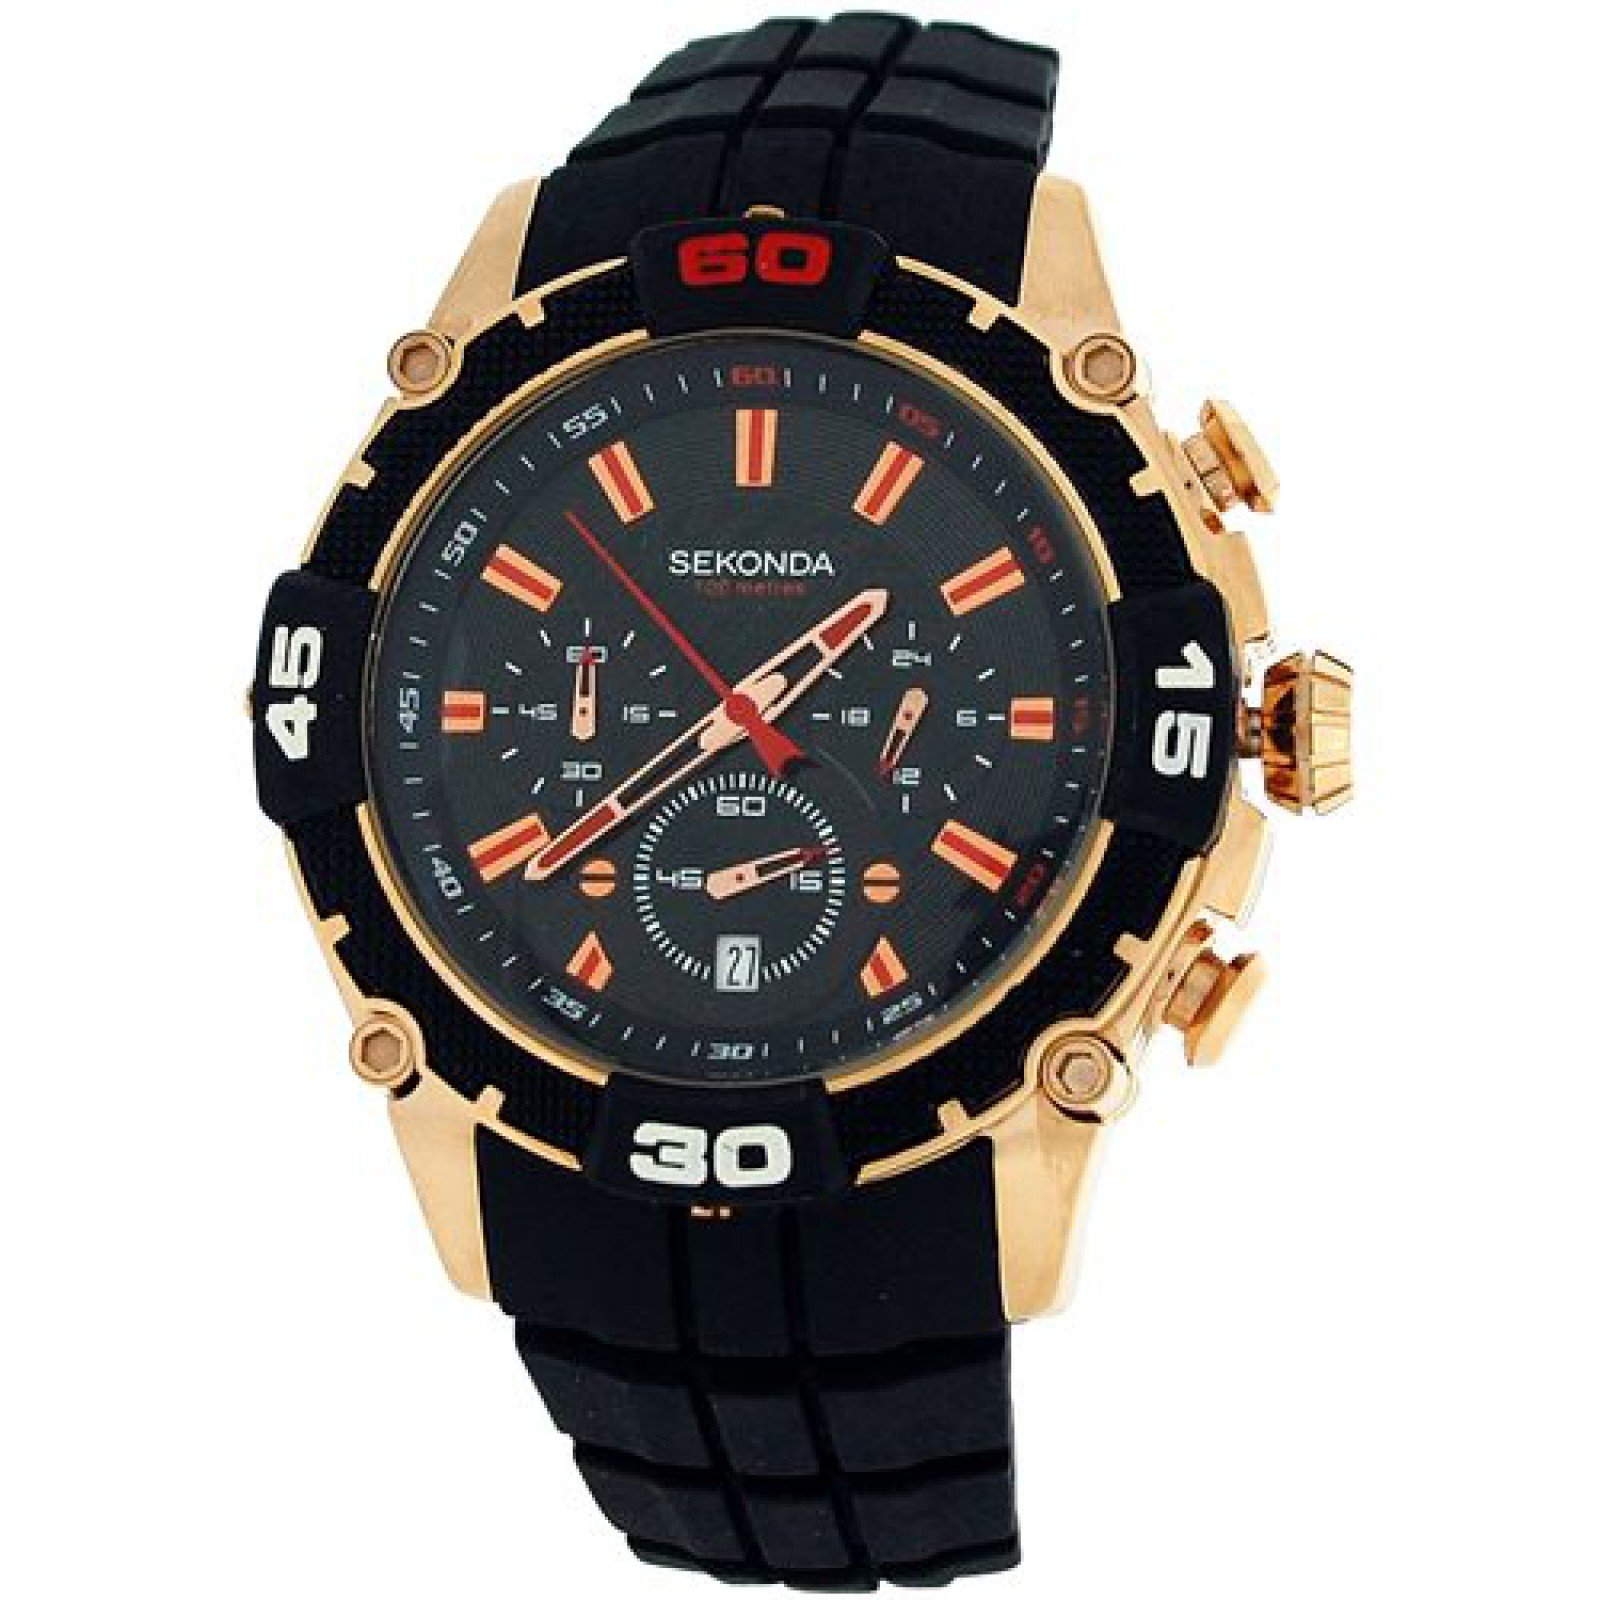 Sekonda Gents Analogue Date Chronograph Black Silicone Strap Sports Watch 3490 by Sekonda